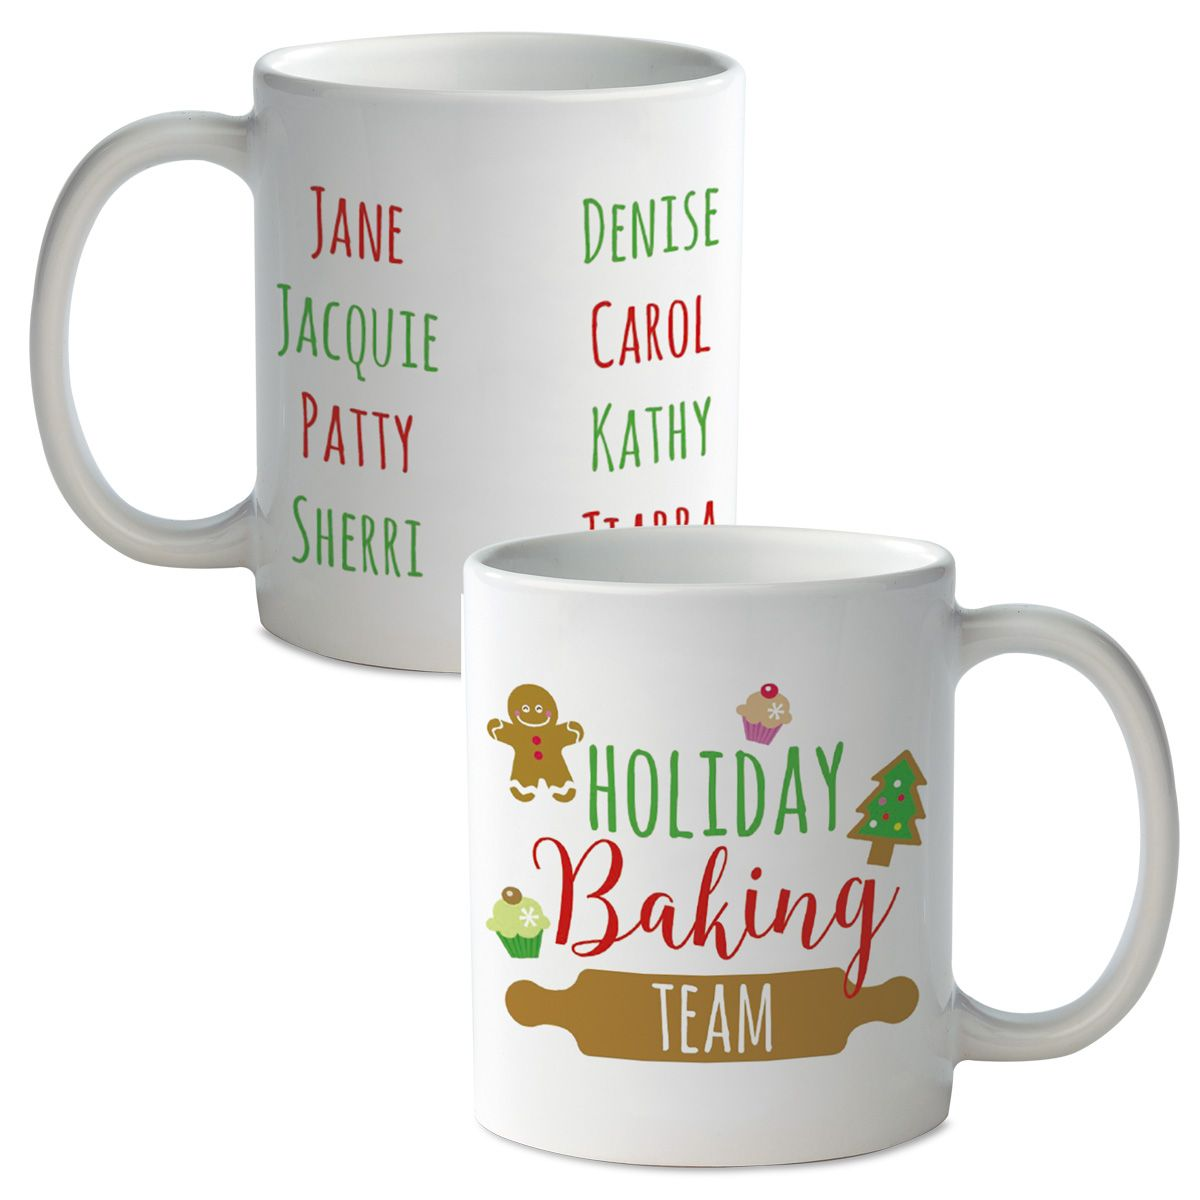 Holiday Baking Team Personalized Mug